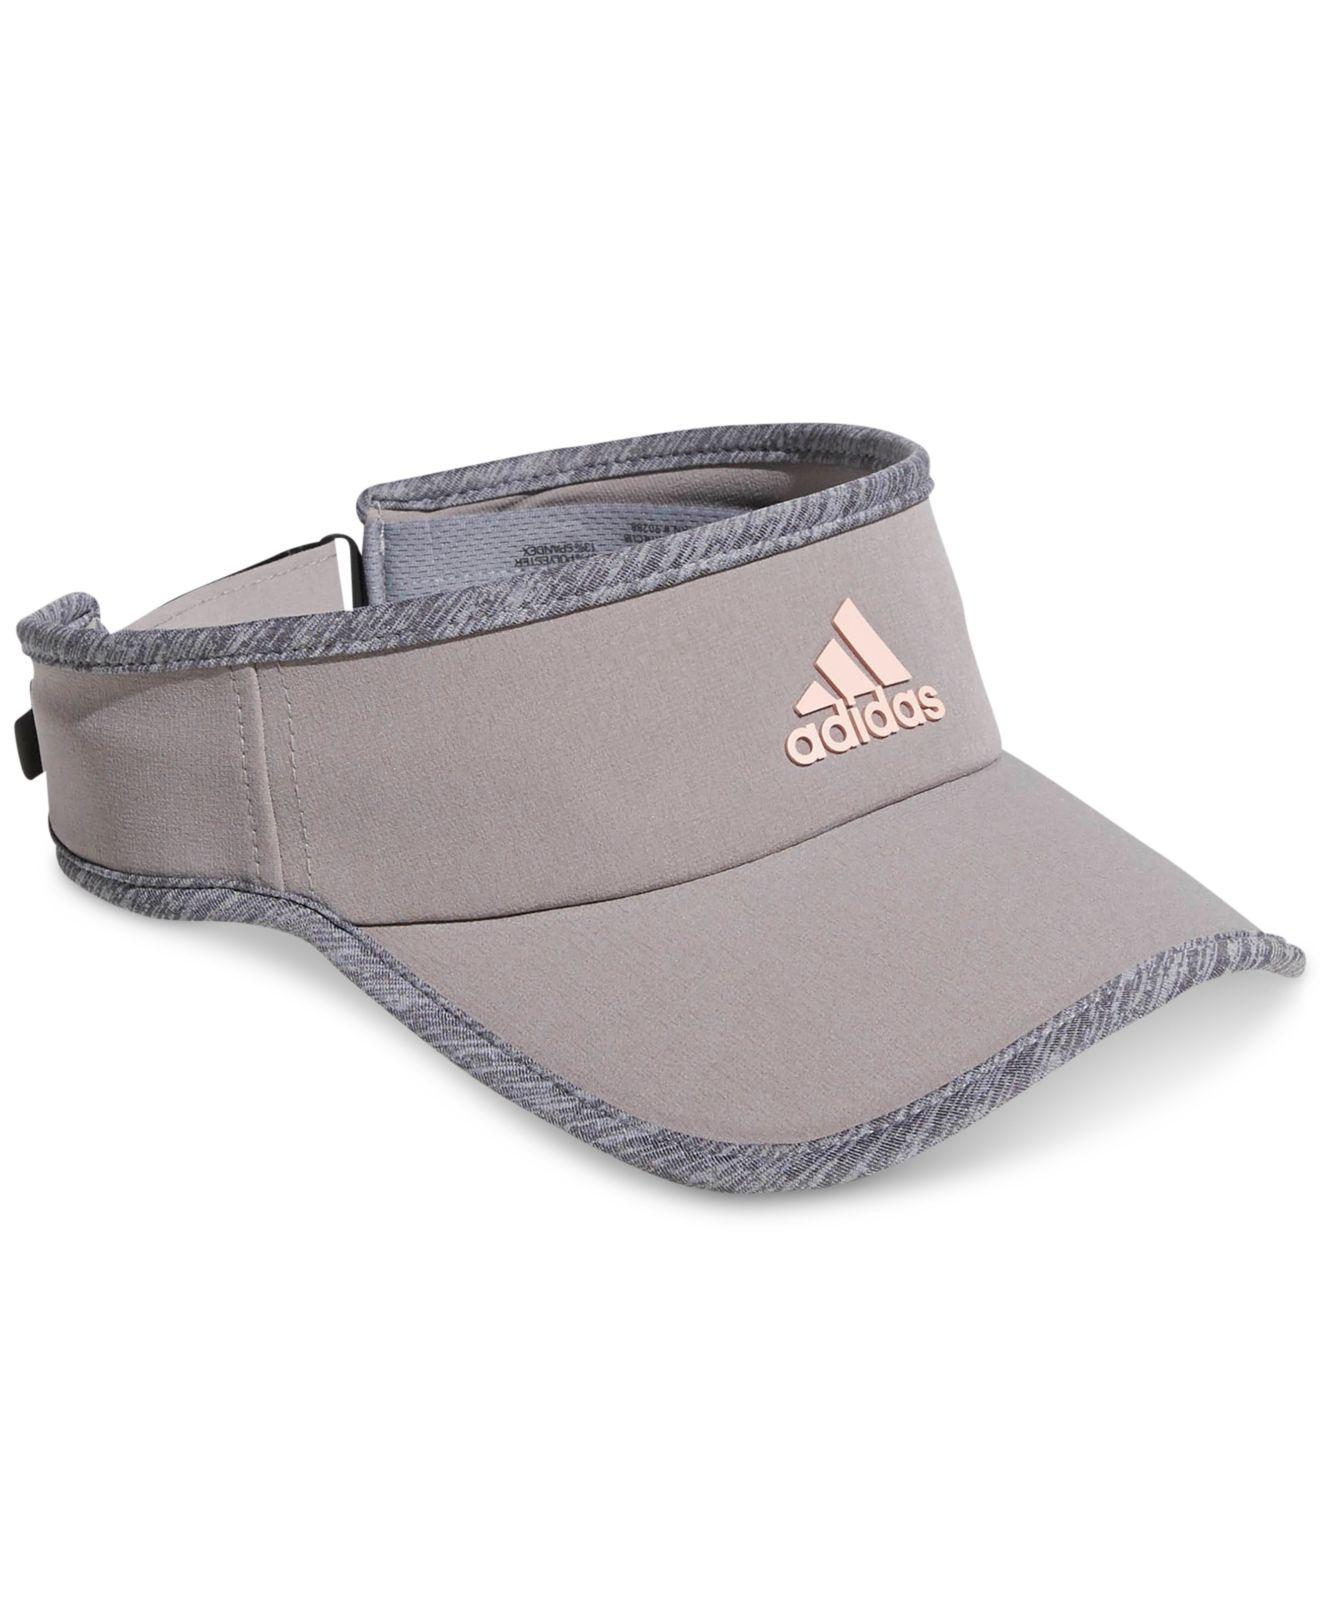 51a891befd1 Lyst - Adidas Climacool® Superlite Visor in Gray